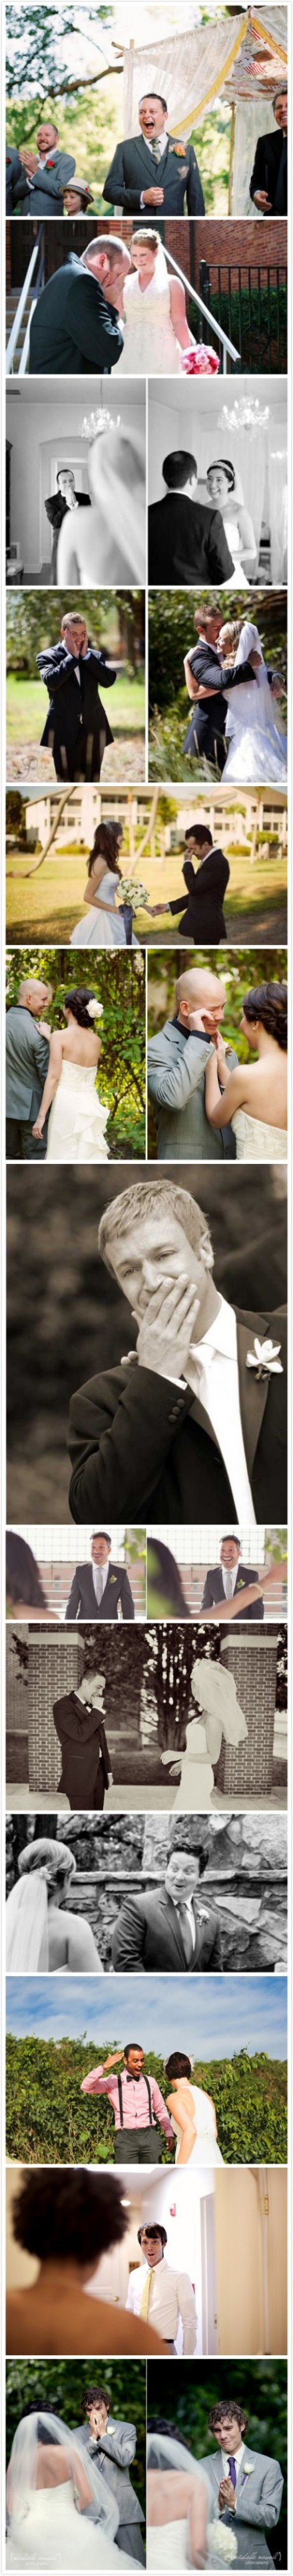 Grooms' first reactions to the brides.